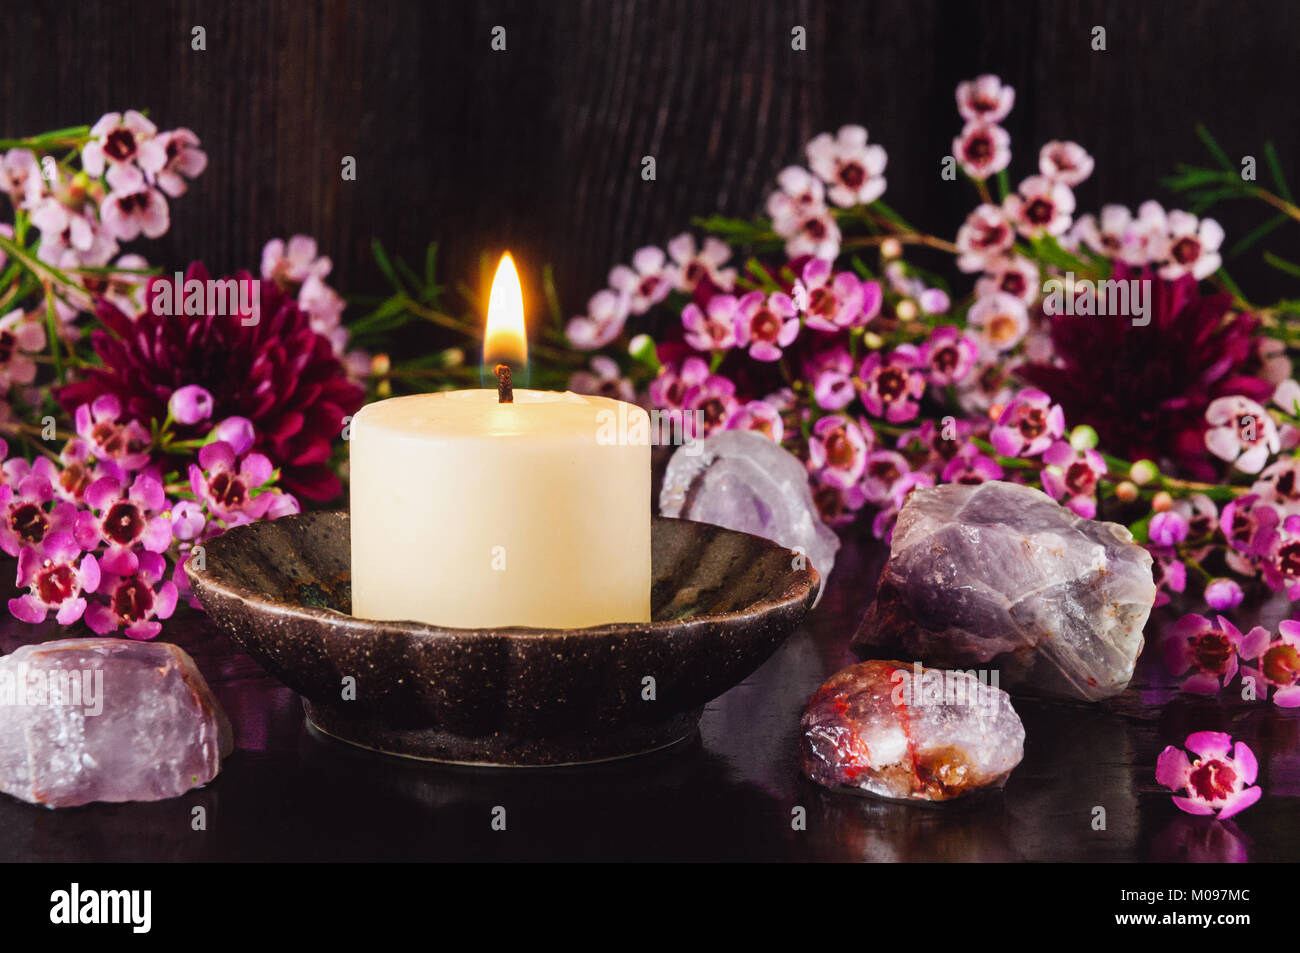 White Candle with Amethyst Crystals and Mixed Flowers - Stock Image